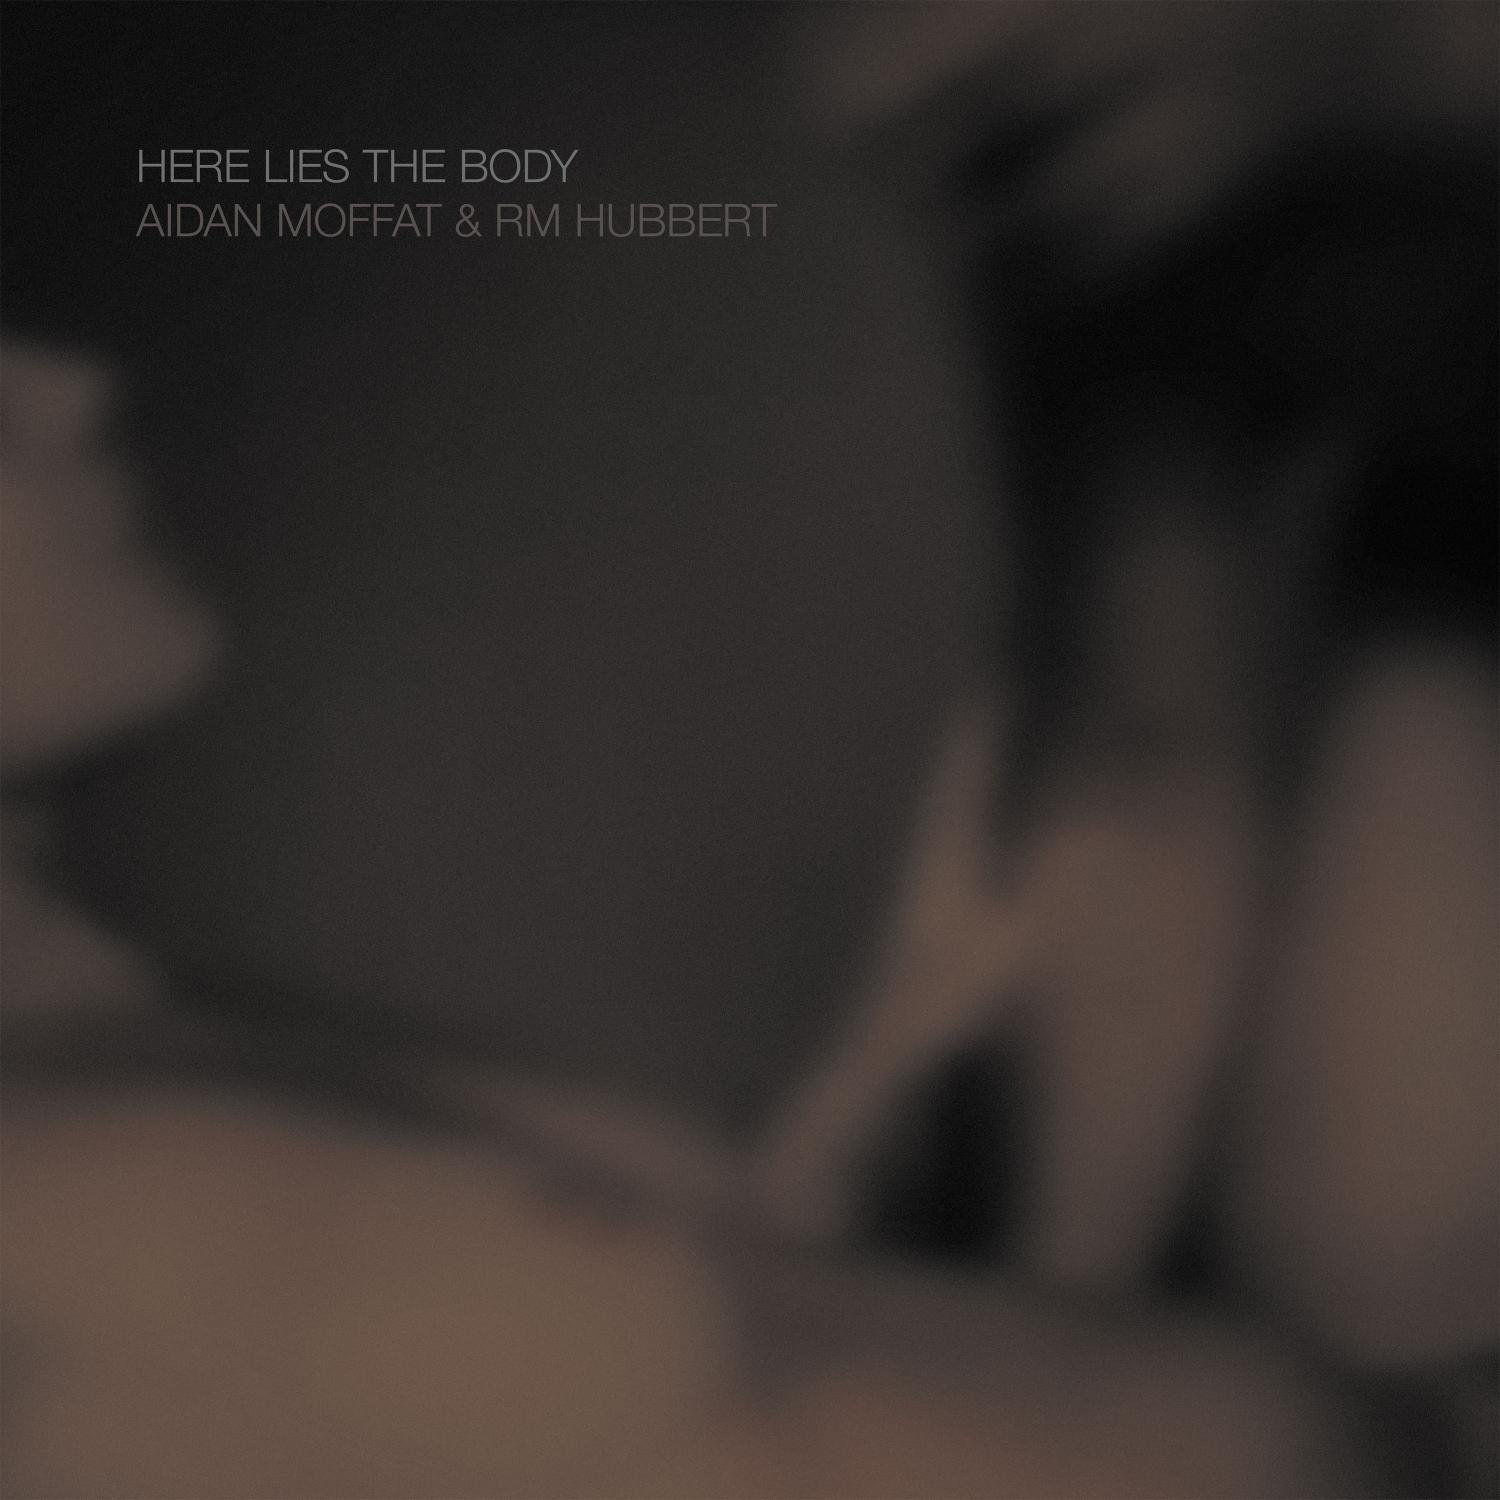 Aidan Moffat & RM Hubbert - Here Lies The Body (Rock Action)